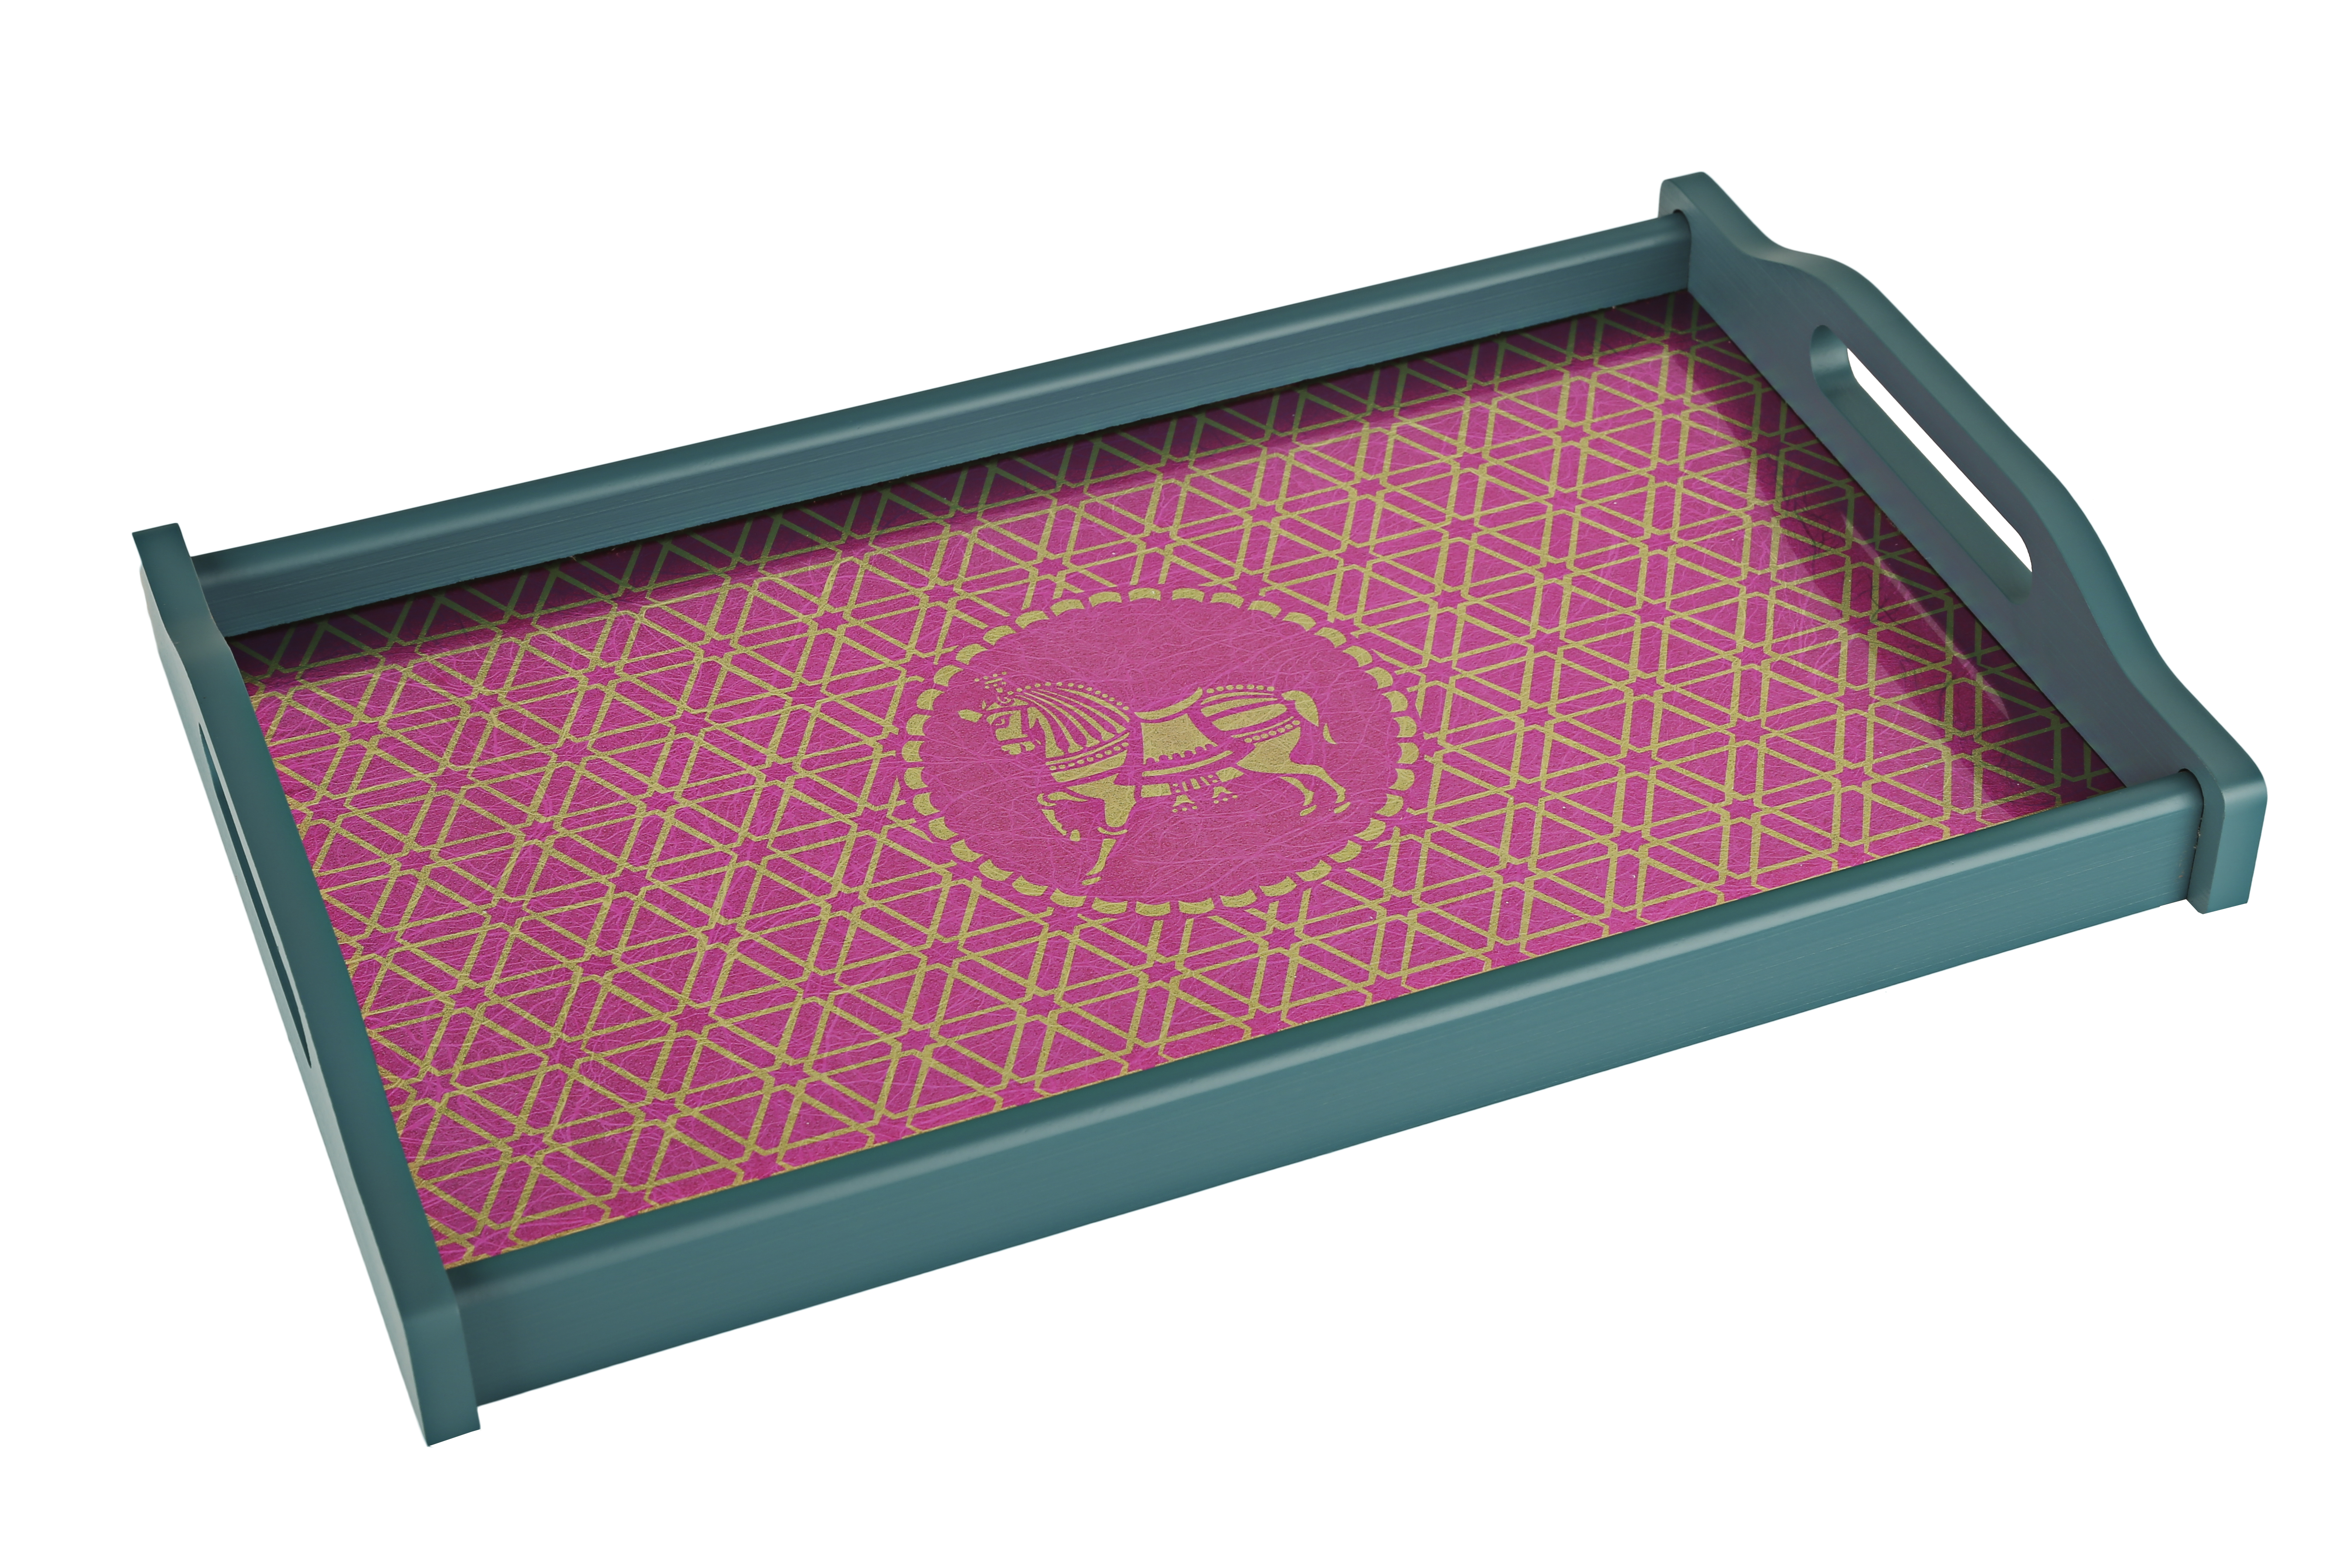 LE Elephant & Horses Big Tray Timber Wood Trays in Teal And Pink Colour by Living Essence